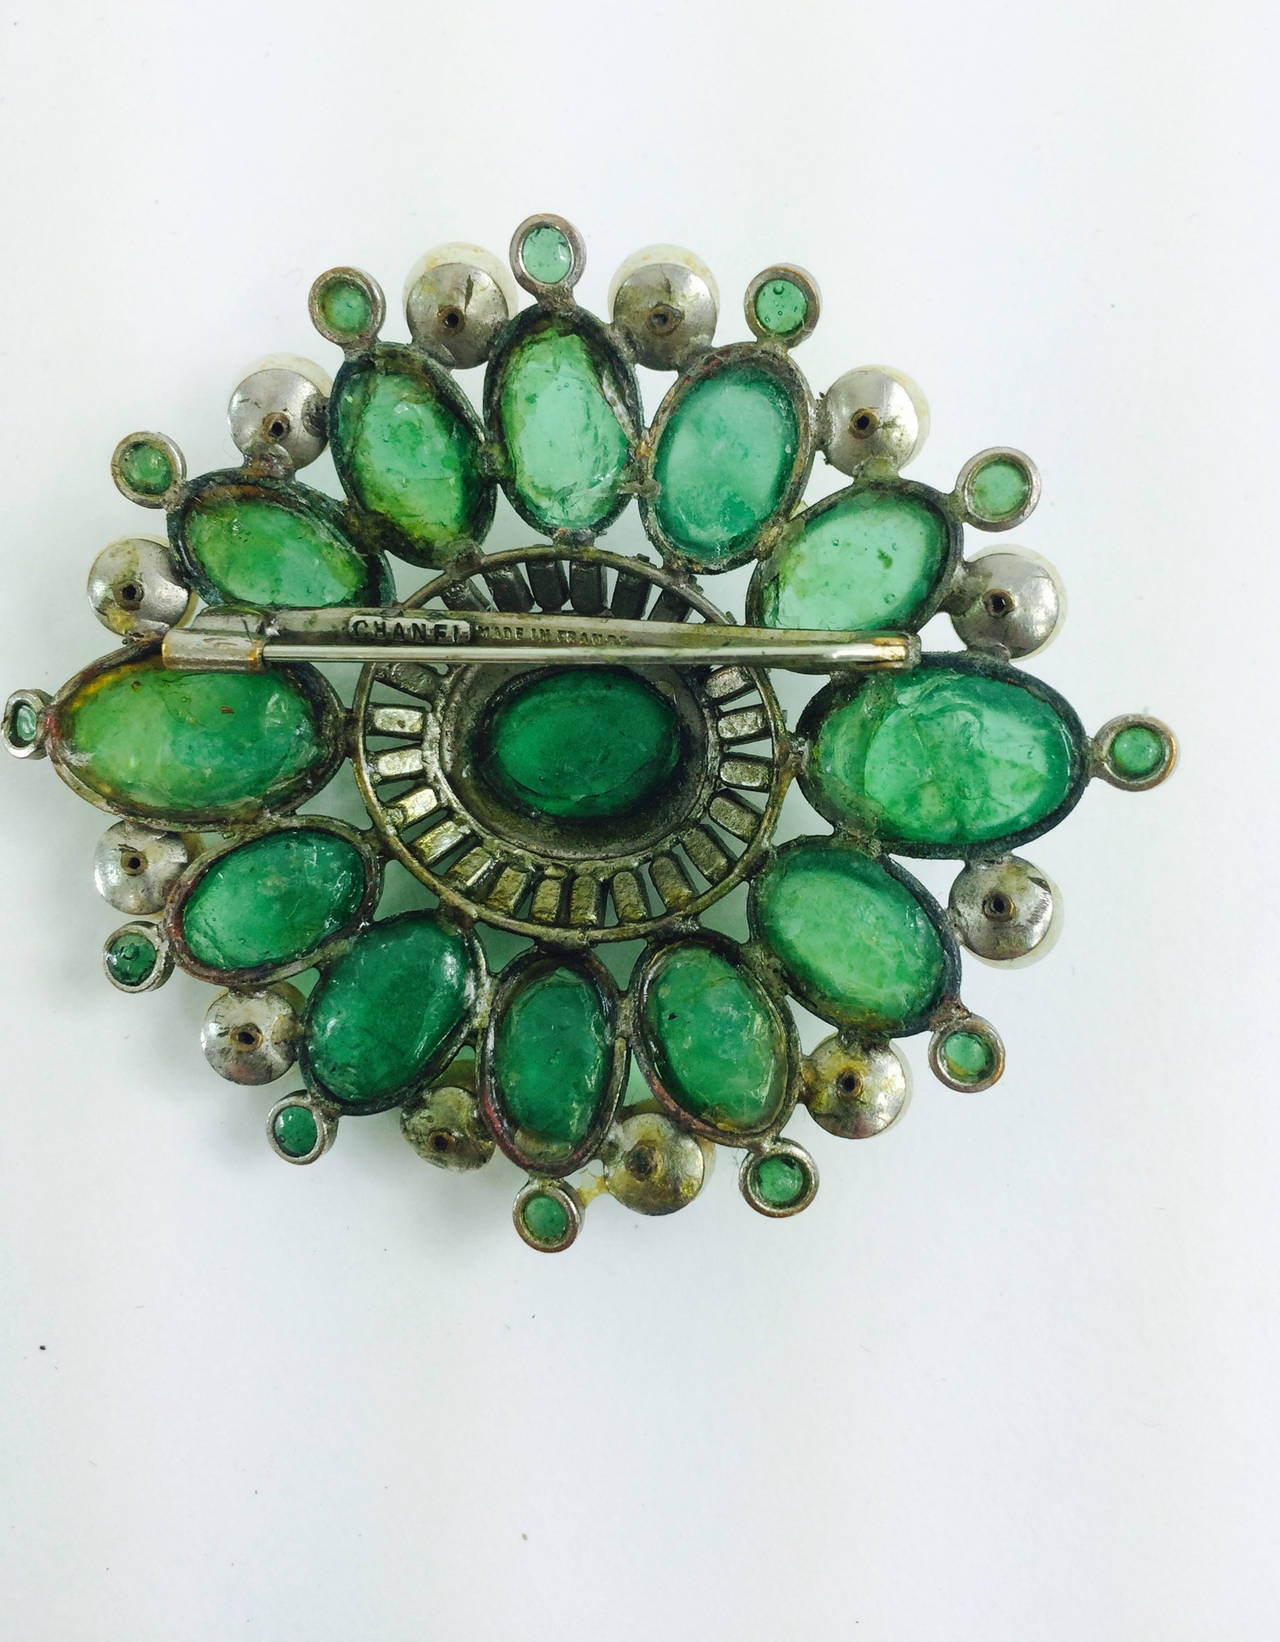 Chanel rare early signed large Gripoix emerald brooch 1950s 2